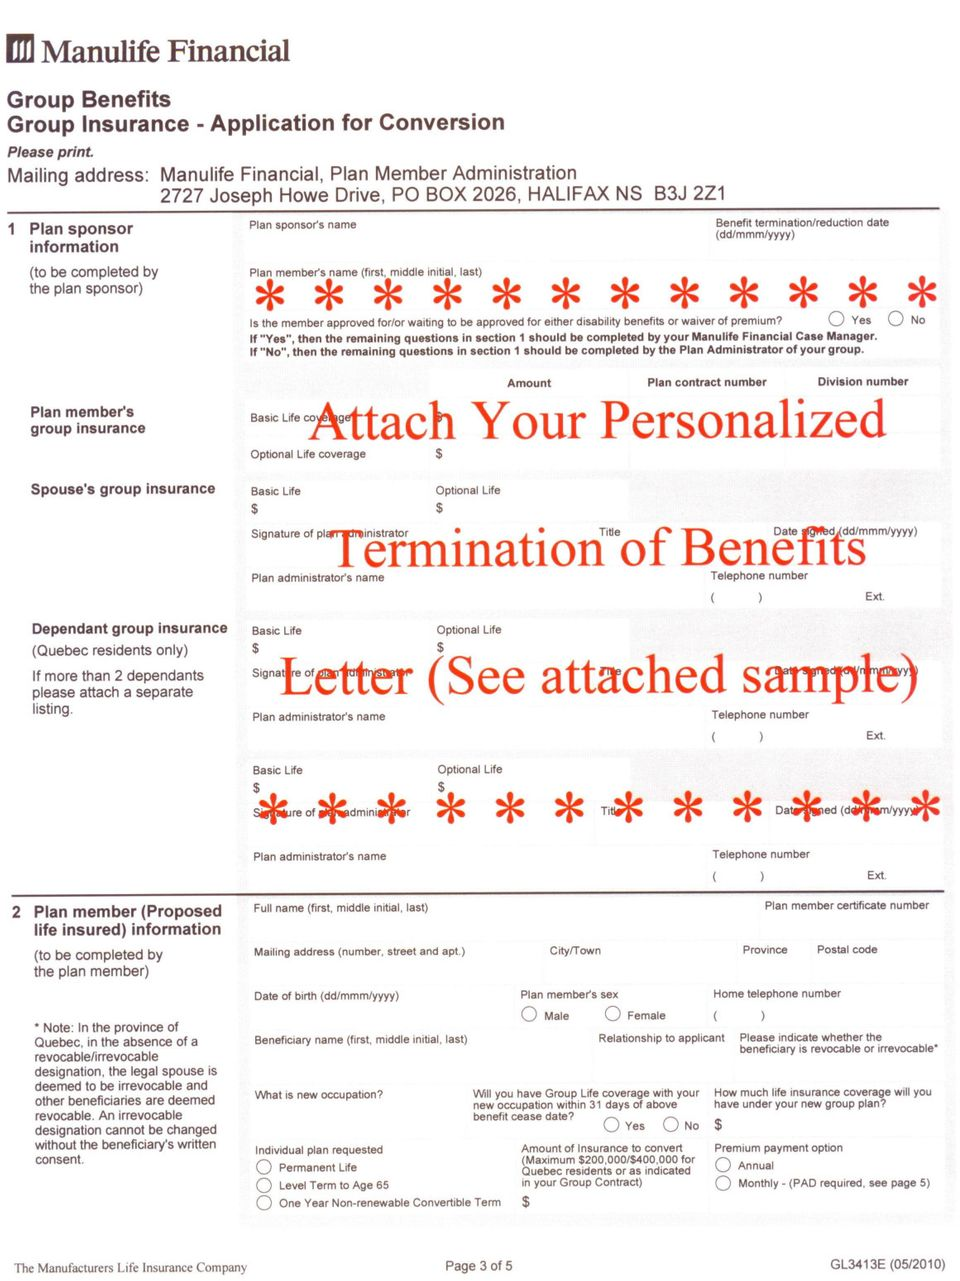 name Benefit termination/reduction date (dd/mmm/yyyy) *********** Plan member's name (first, middle initial, last) Is the member approved for/or waiting to be approved for either disability benefits